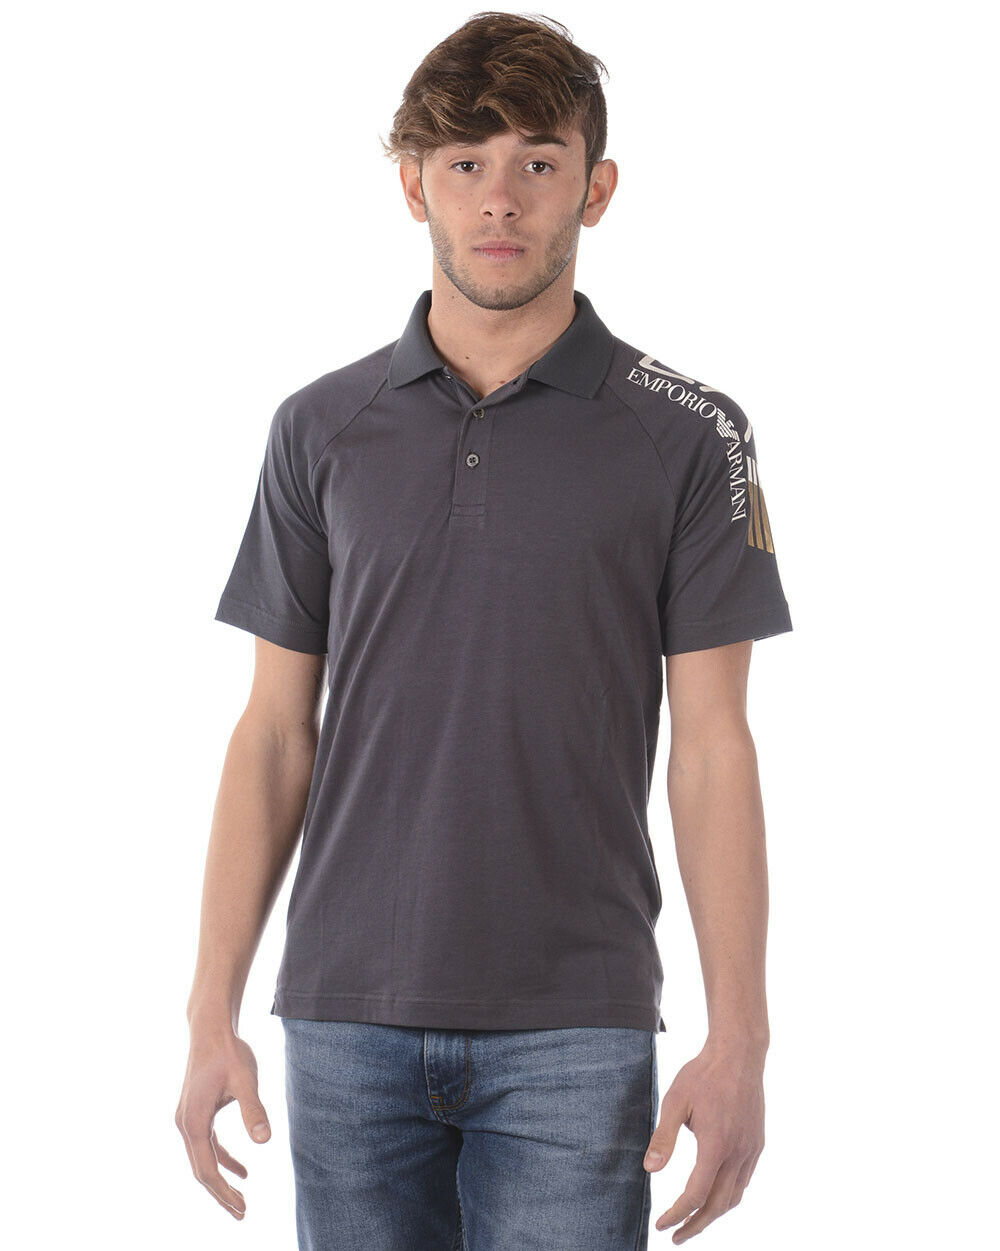 Emporio Armani EA7 Polo Shirt Cotton Man grau 3ZPF56PJ03Z 1994 Sz L MAKE OFFER